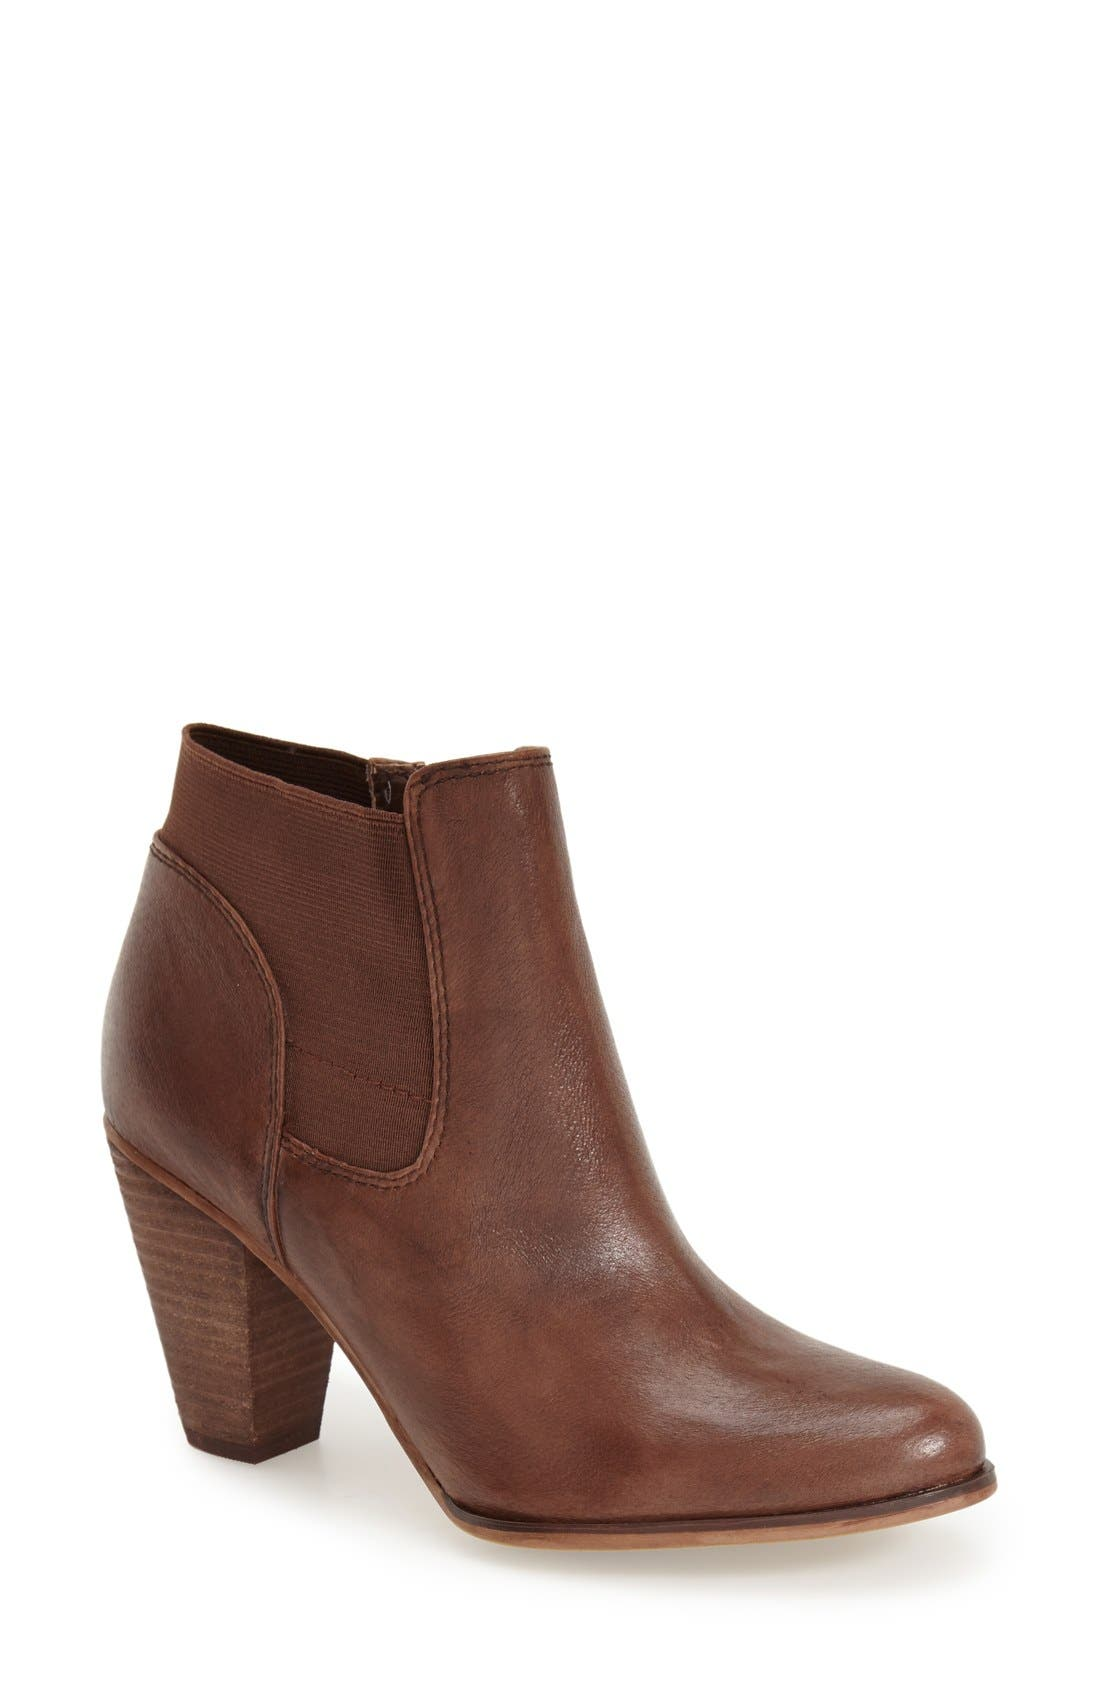 Alternate Image 1 Selected - Steven by Steve Madden 'Roami' Ankle Bootie (Women)